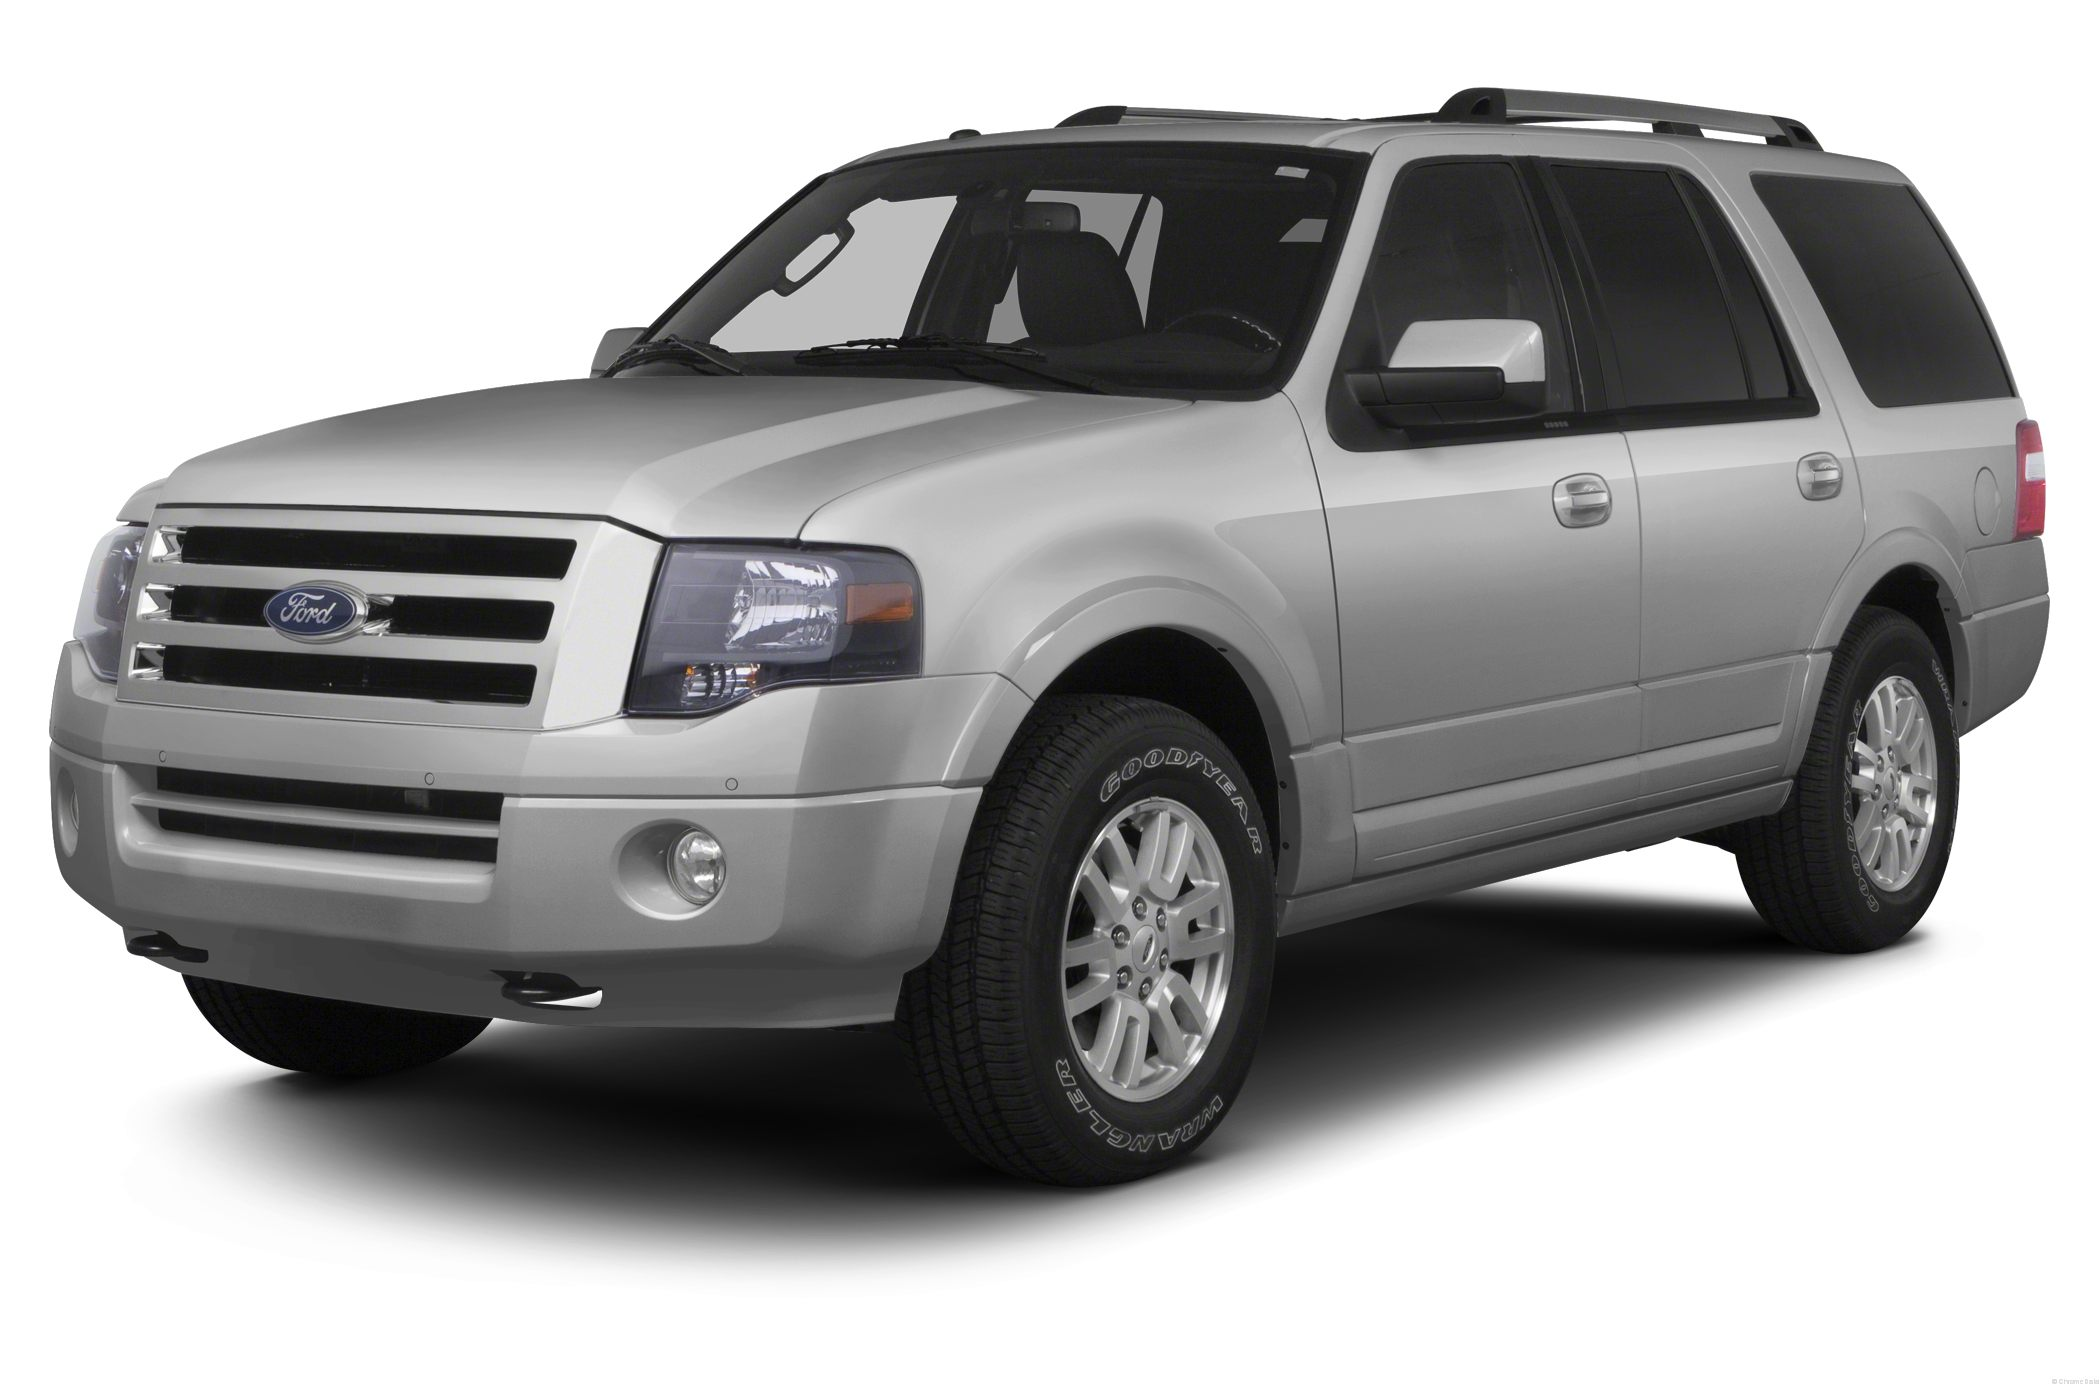 2013 Ford Expedition #2